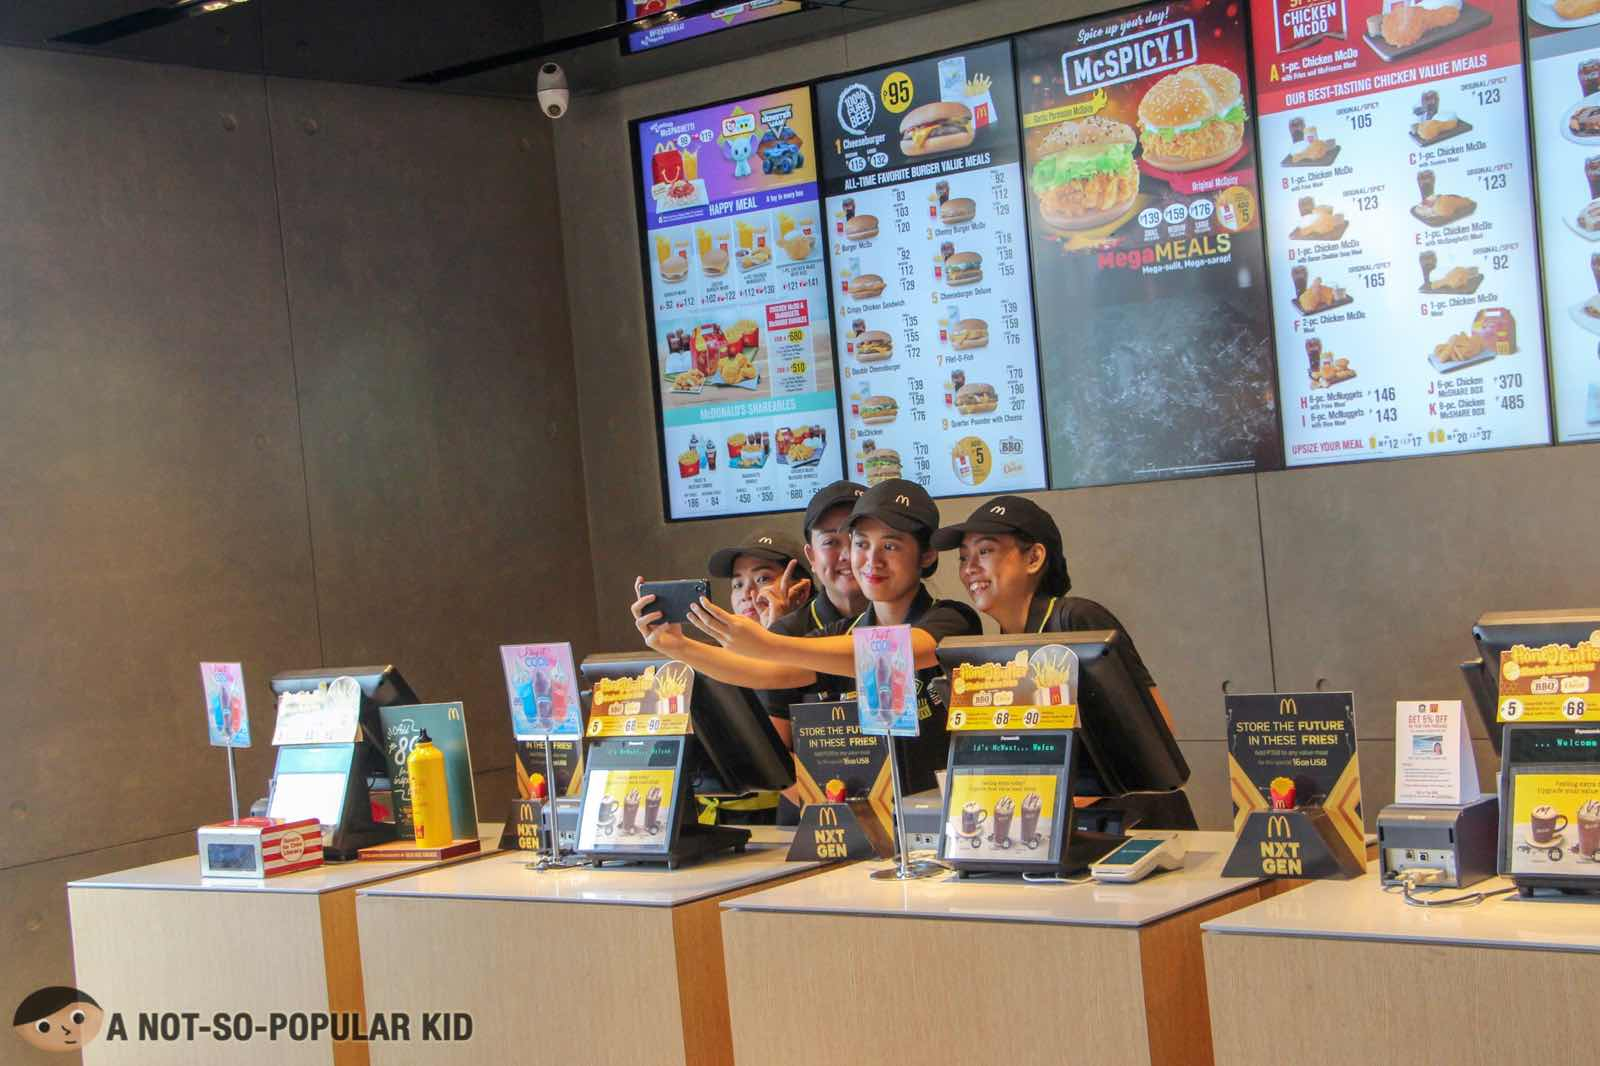 Friendly crew in NXTGEN stores of McDonald's